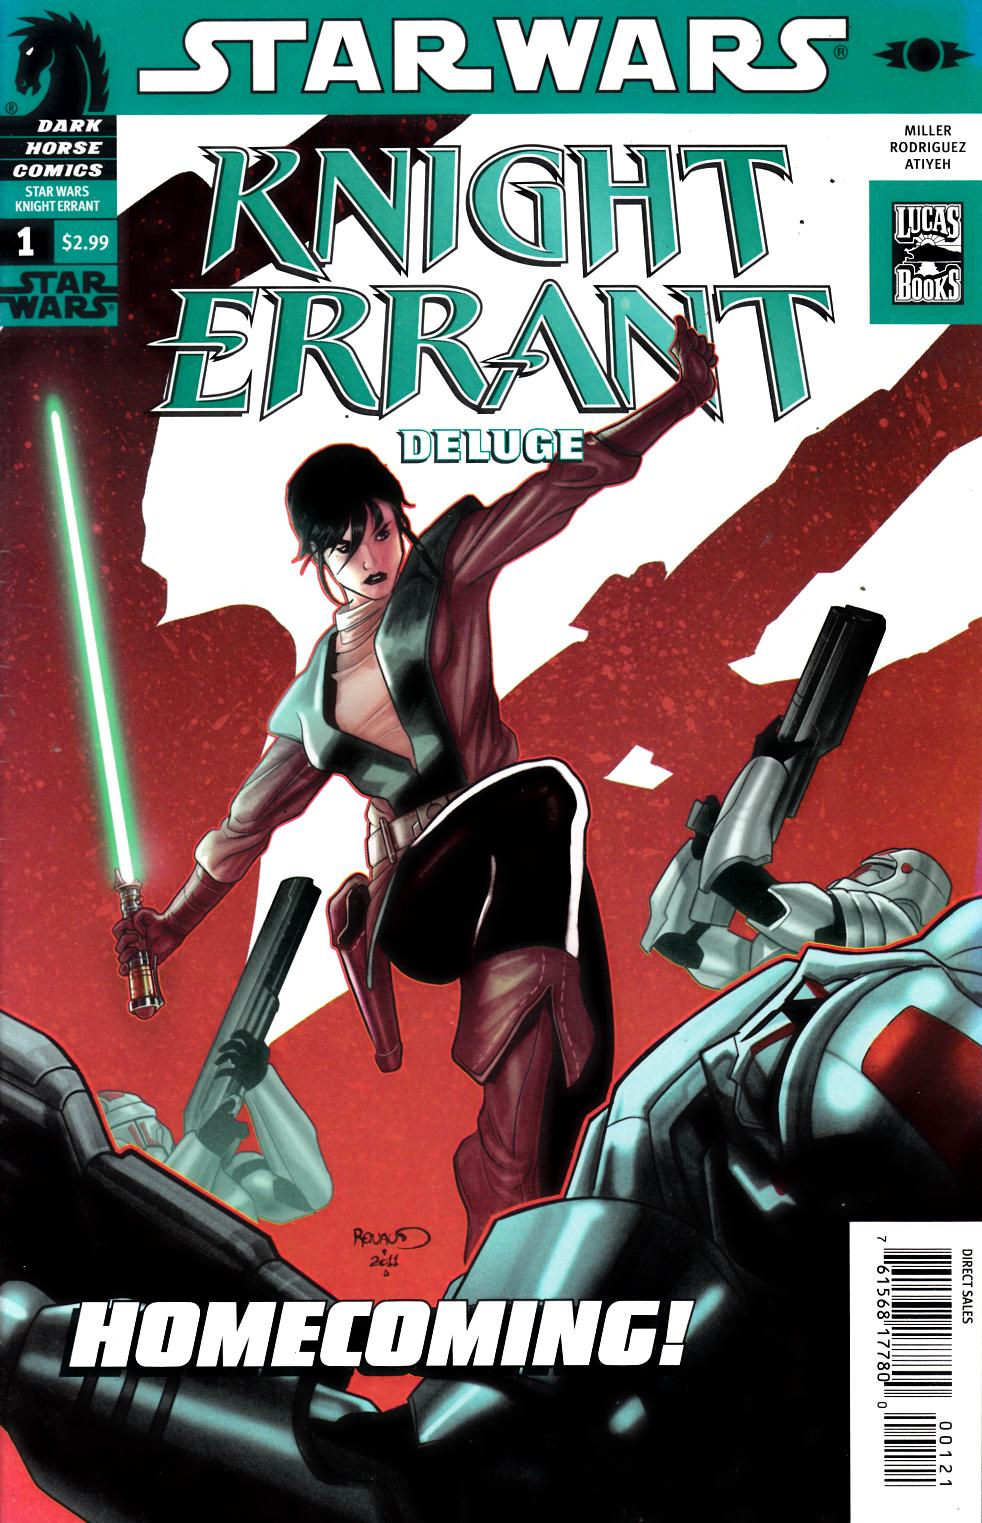 Star Wars Knight Errant Deluge #1 Renaud Variant Cover Very Fine Plus (8.5) [Dark Horse Comic] THUMBNAIL